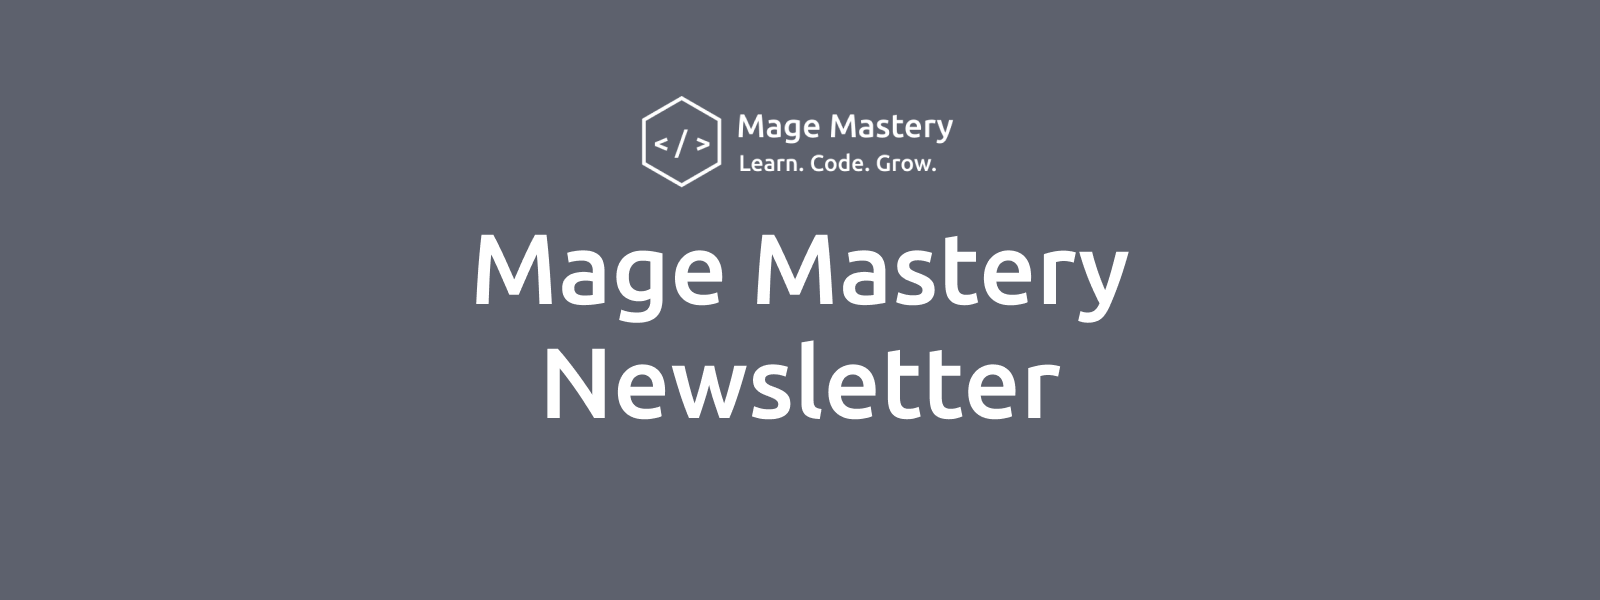 Newsletter: new Magento lesson and courses, Blog and Challenge